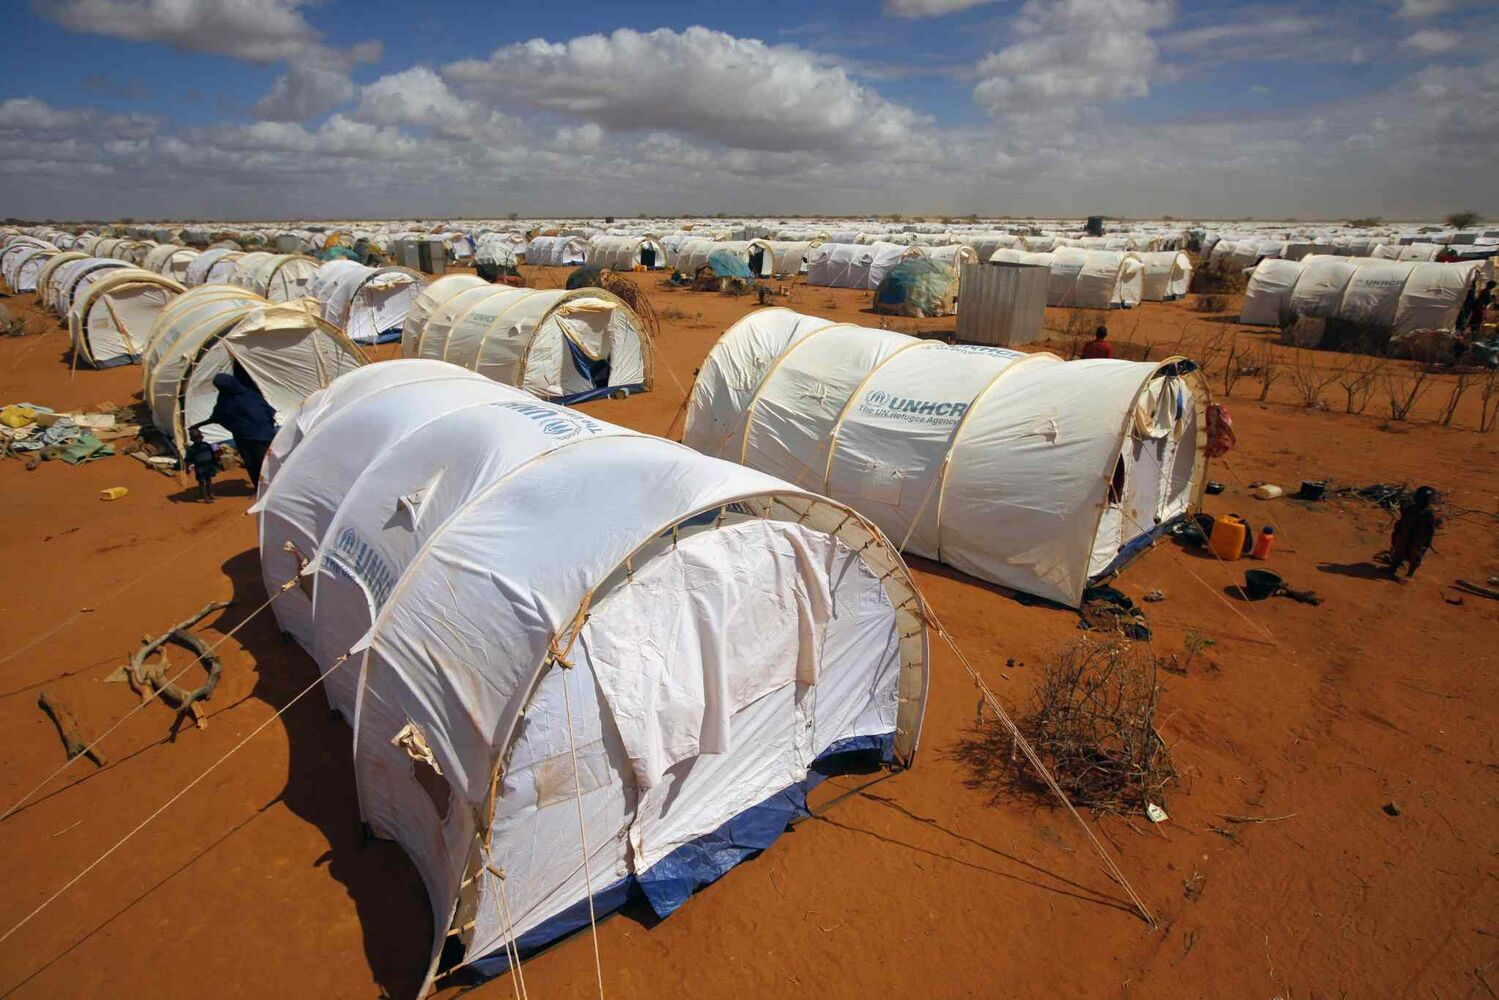 In this August 2011 photo, tents are seen at the UNHCR's LFO Extension camp outside Dadaab, eastern Kenya, 100 kilometers from the Somali border. The Dadaab refugee camp — the largest in the world — was built for 90,000 people. The current population is over 400,000 with thousands of new arrivals crammed into areas outside the refugee camp, waiting to be formally admitted. (Jerome Delay / The Associated Press)